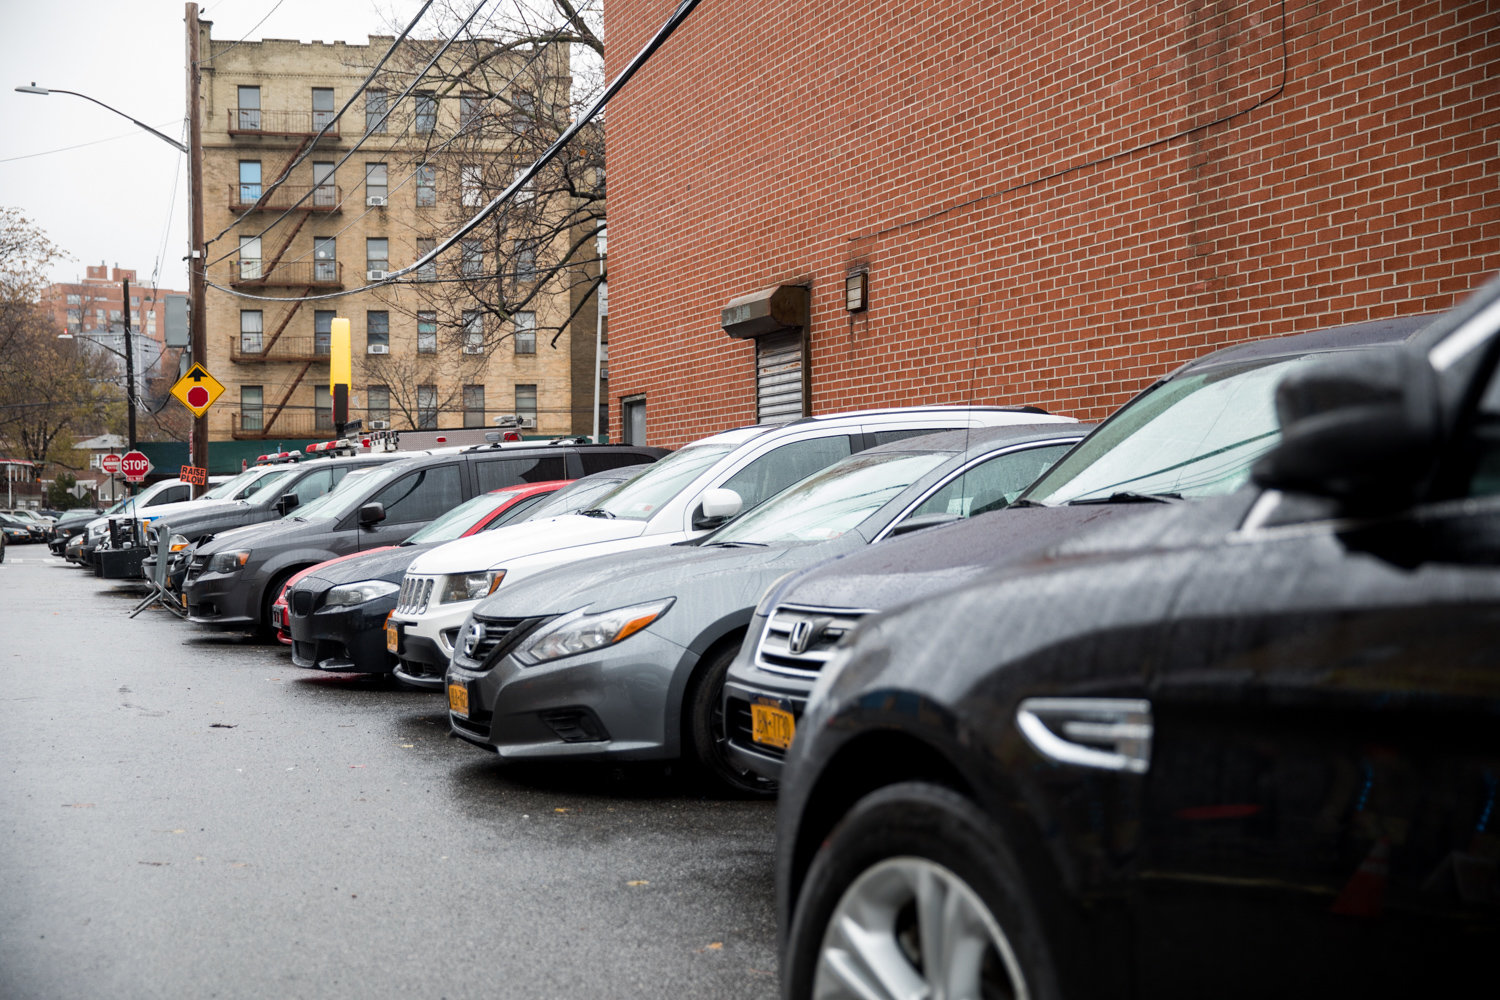 City-issued parking permits give drivers more or less free reign to park wherever they like. Yet, some have complained this can often manifest in ways that obstruct getting around, like making some sidewalks impassable. The city council has passed a bill it says will better regulate placard usage.